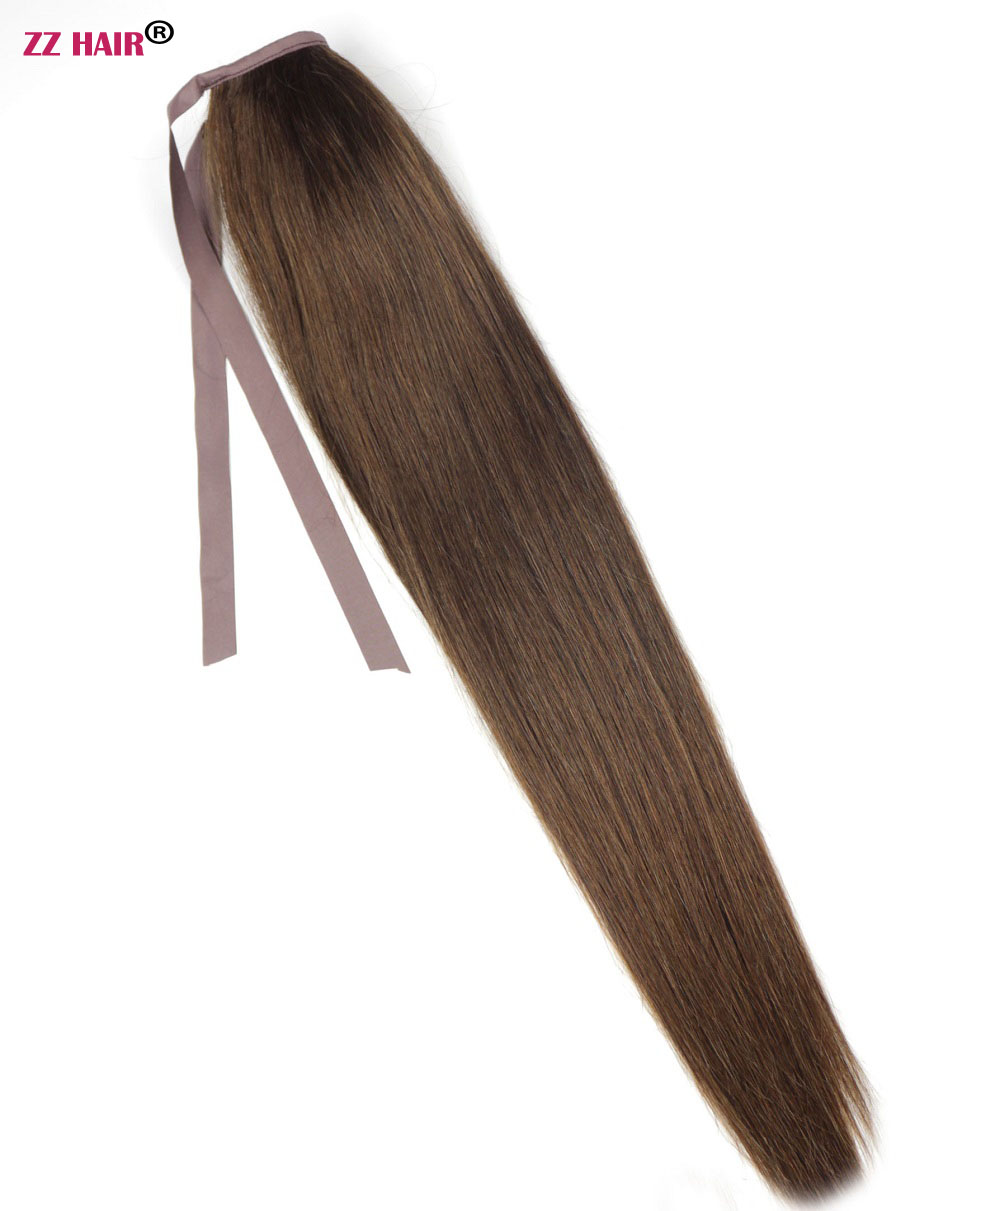 Sego 20 Inches Pure And Piano Ponytail Clips-in Human Hair Extensions Horsetail Natural Straight Hair 100% Non-remy Human Hair Ponytails Hair Pieces